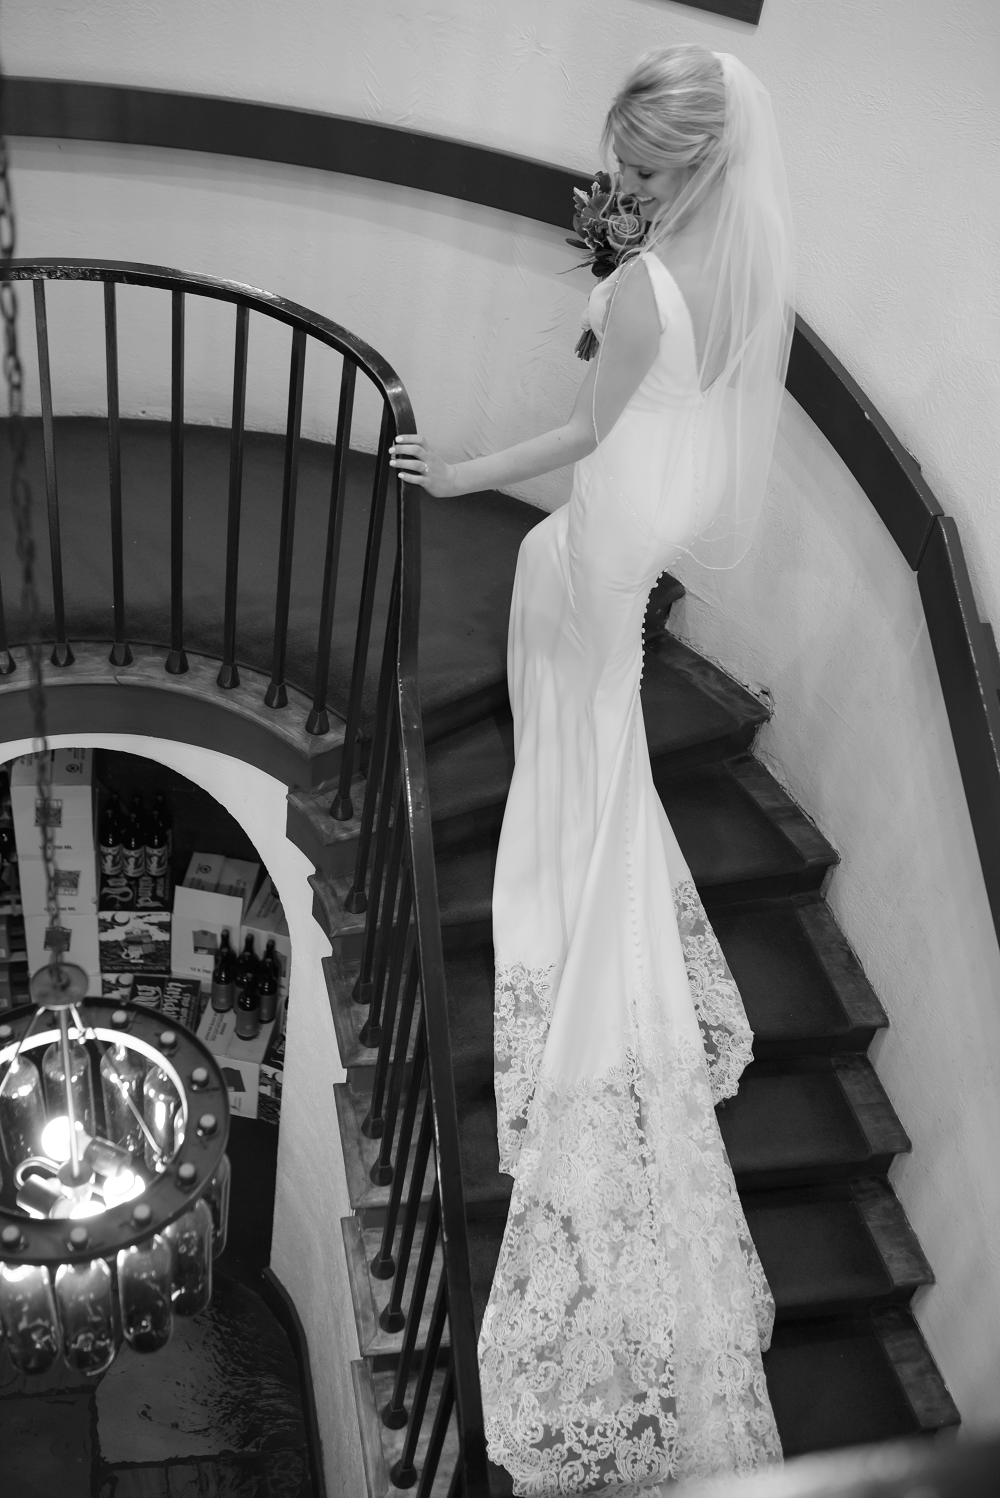 DESTINATION WEDDING IN TRAVERSE CITY WITH KRISTEN AND SCOTT Staircase